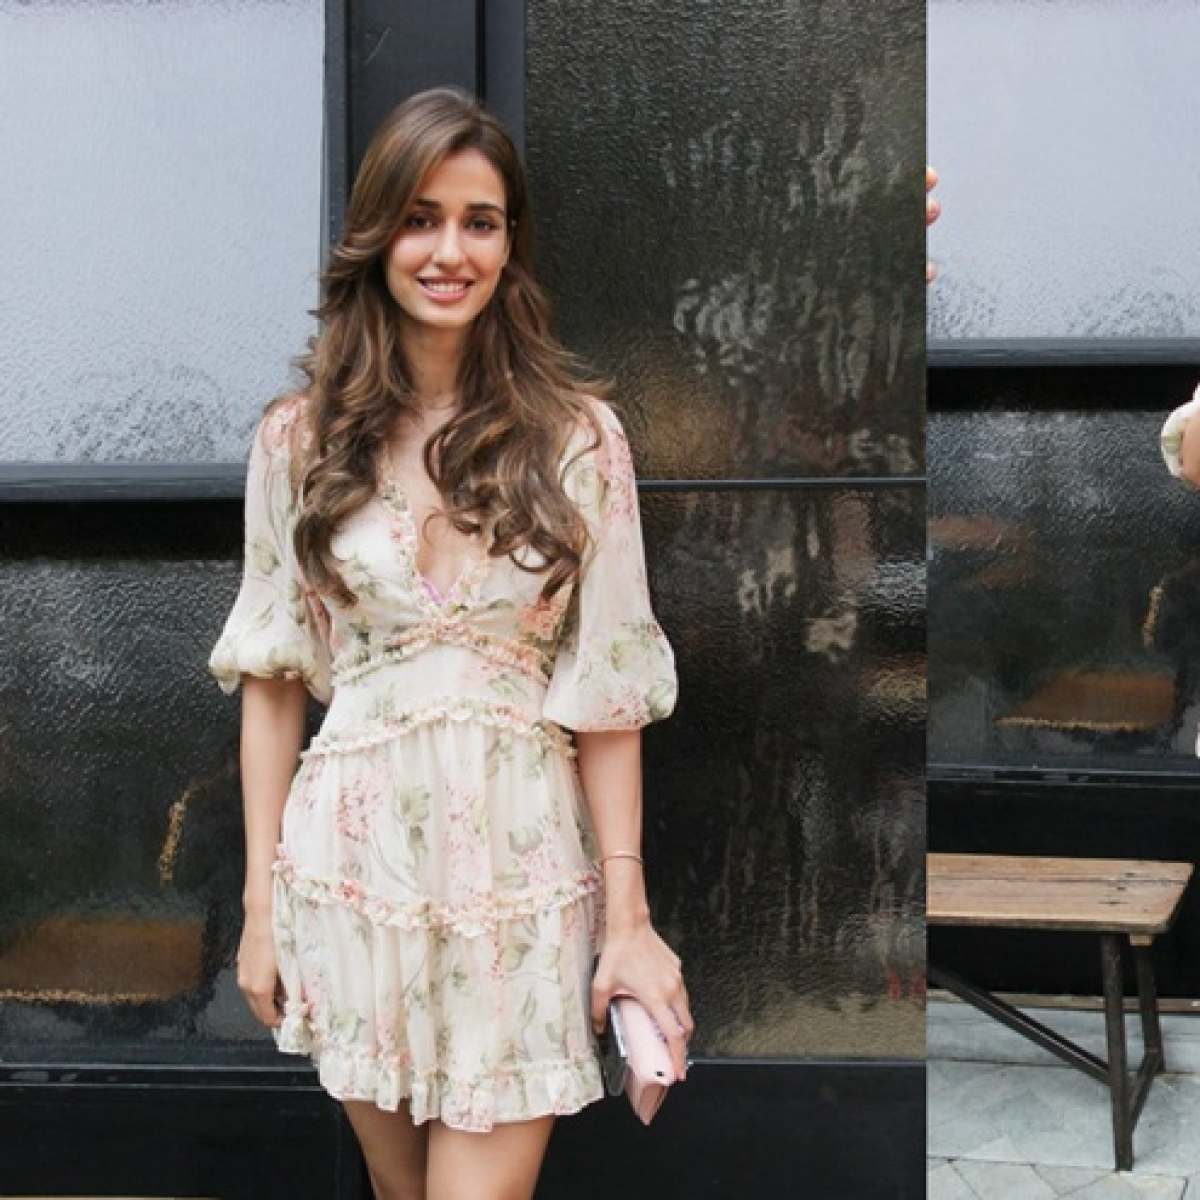 FPJ Fashion Police: Disha Patani beats the heat in an easy-breezy floral dress